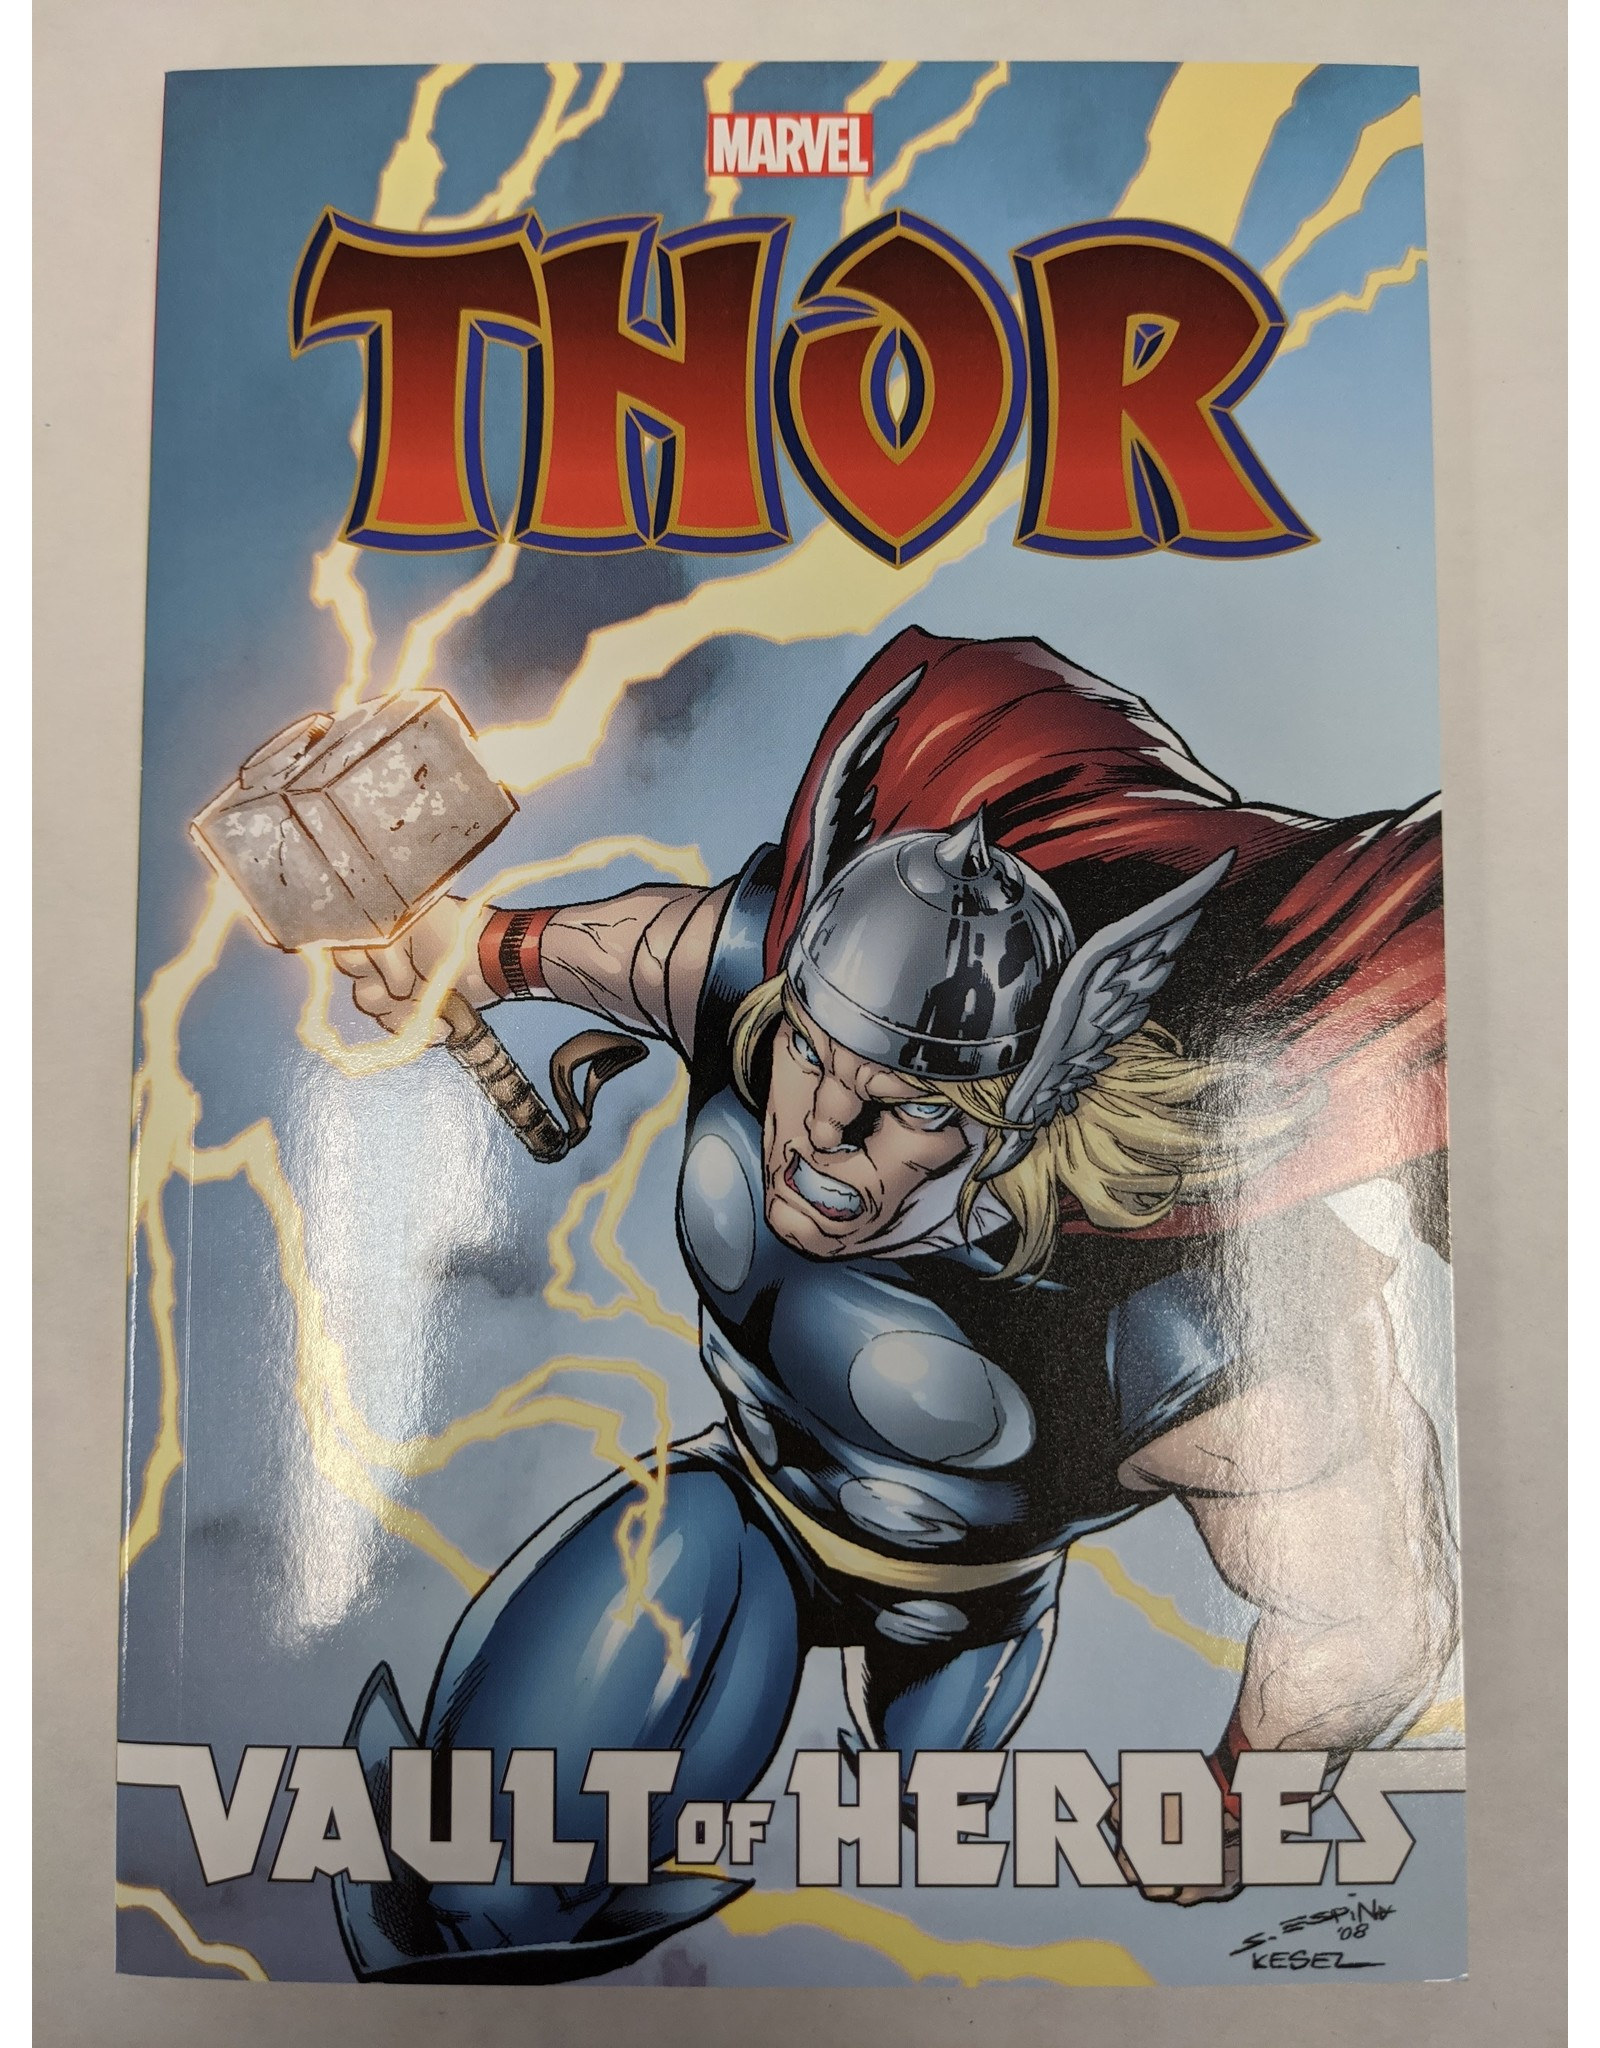 IDW PUBLISHING MARVEL VAULT OF HEROES THOR TP VOL 01